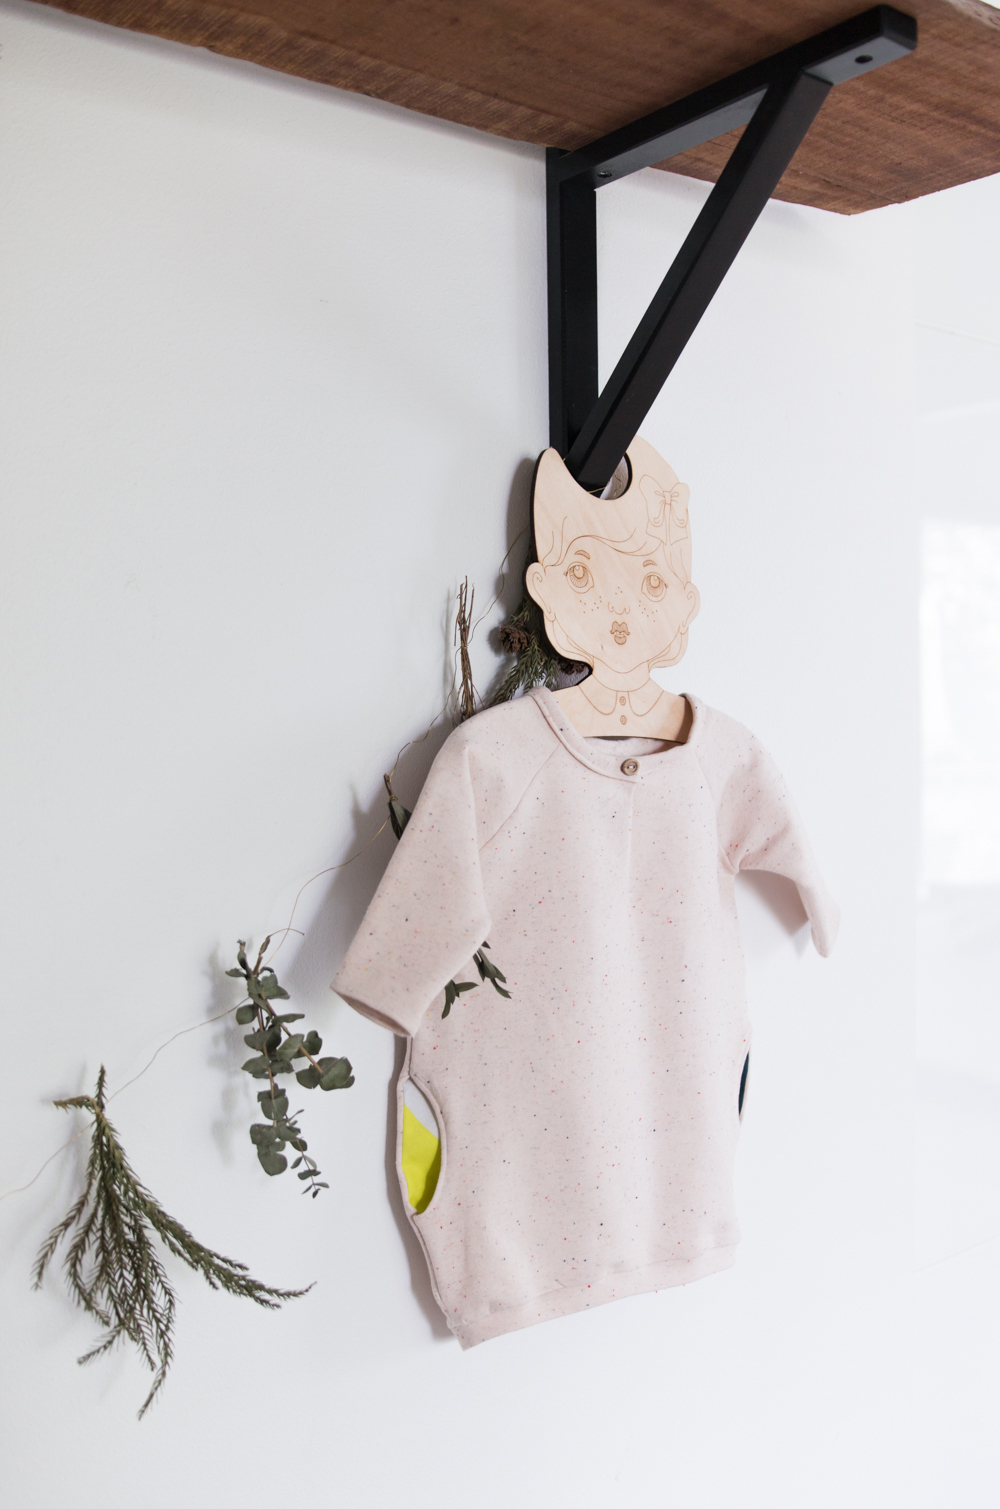 Baggy baby tunic - No Home Without You (1 of 1)